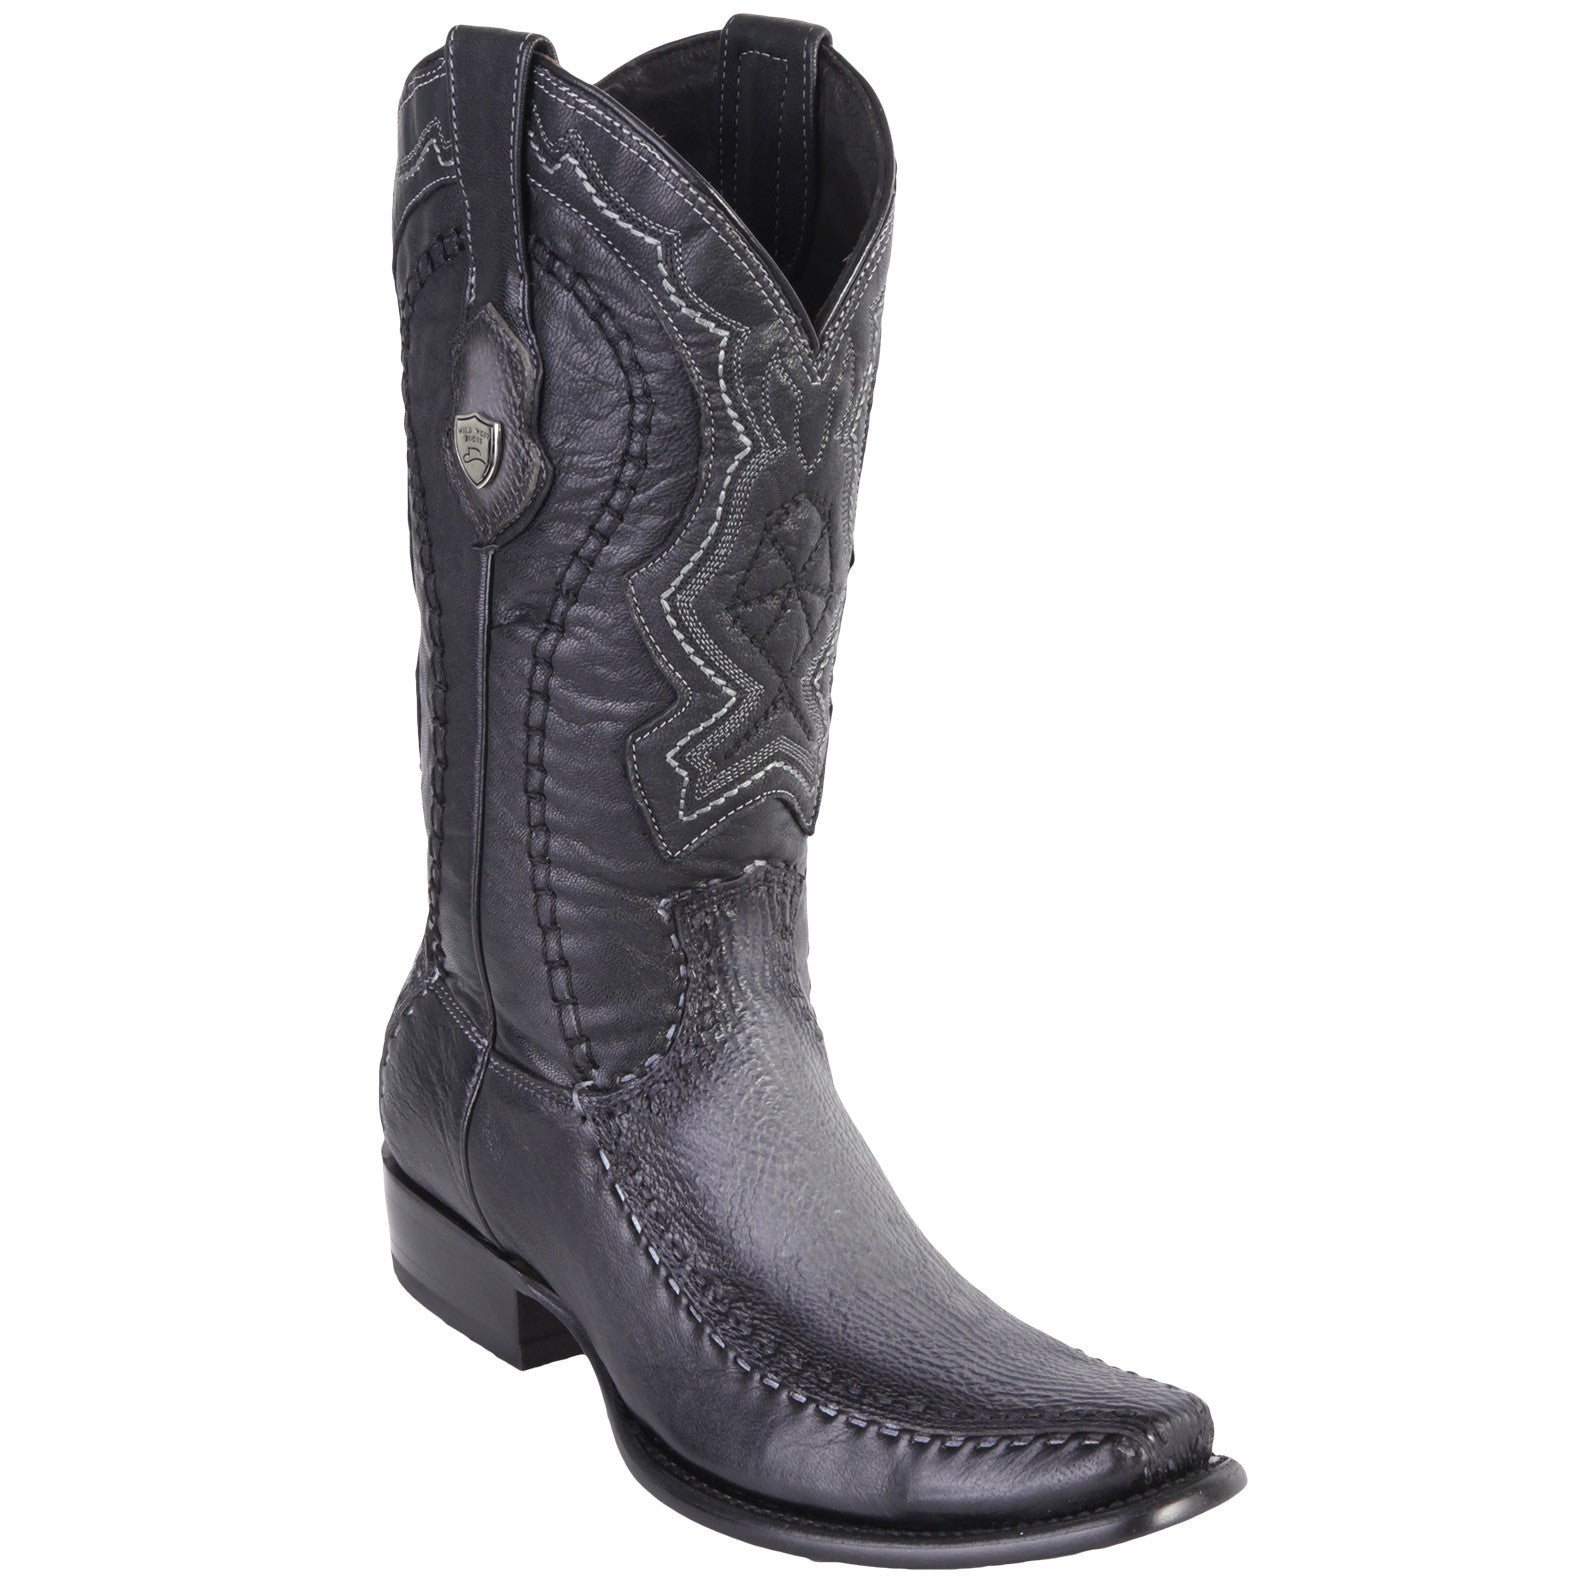 Wild West Men's Stitched Shark Dubai Toe Boots